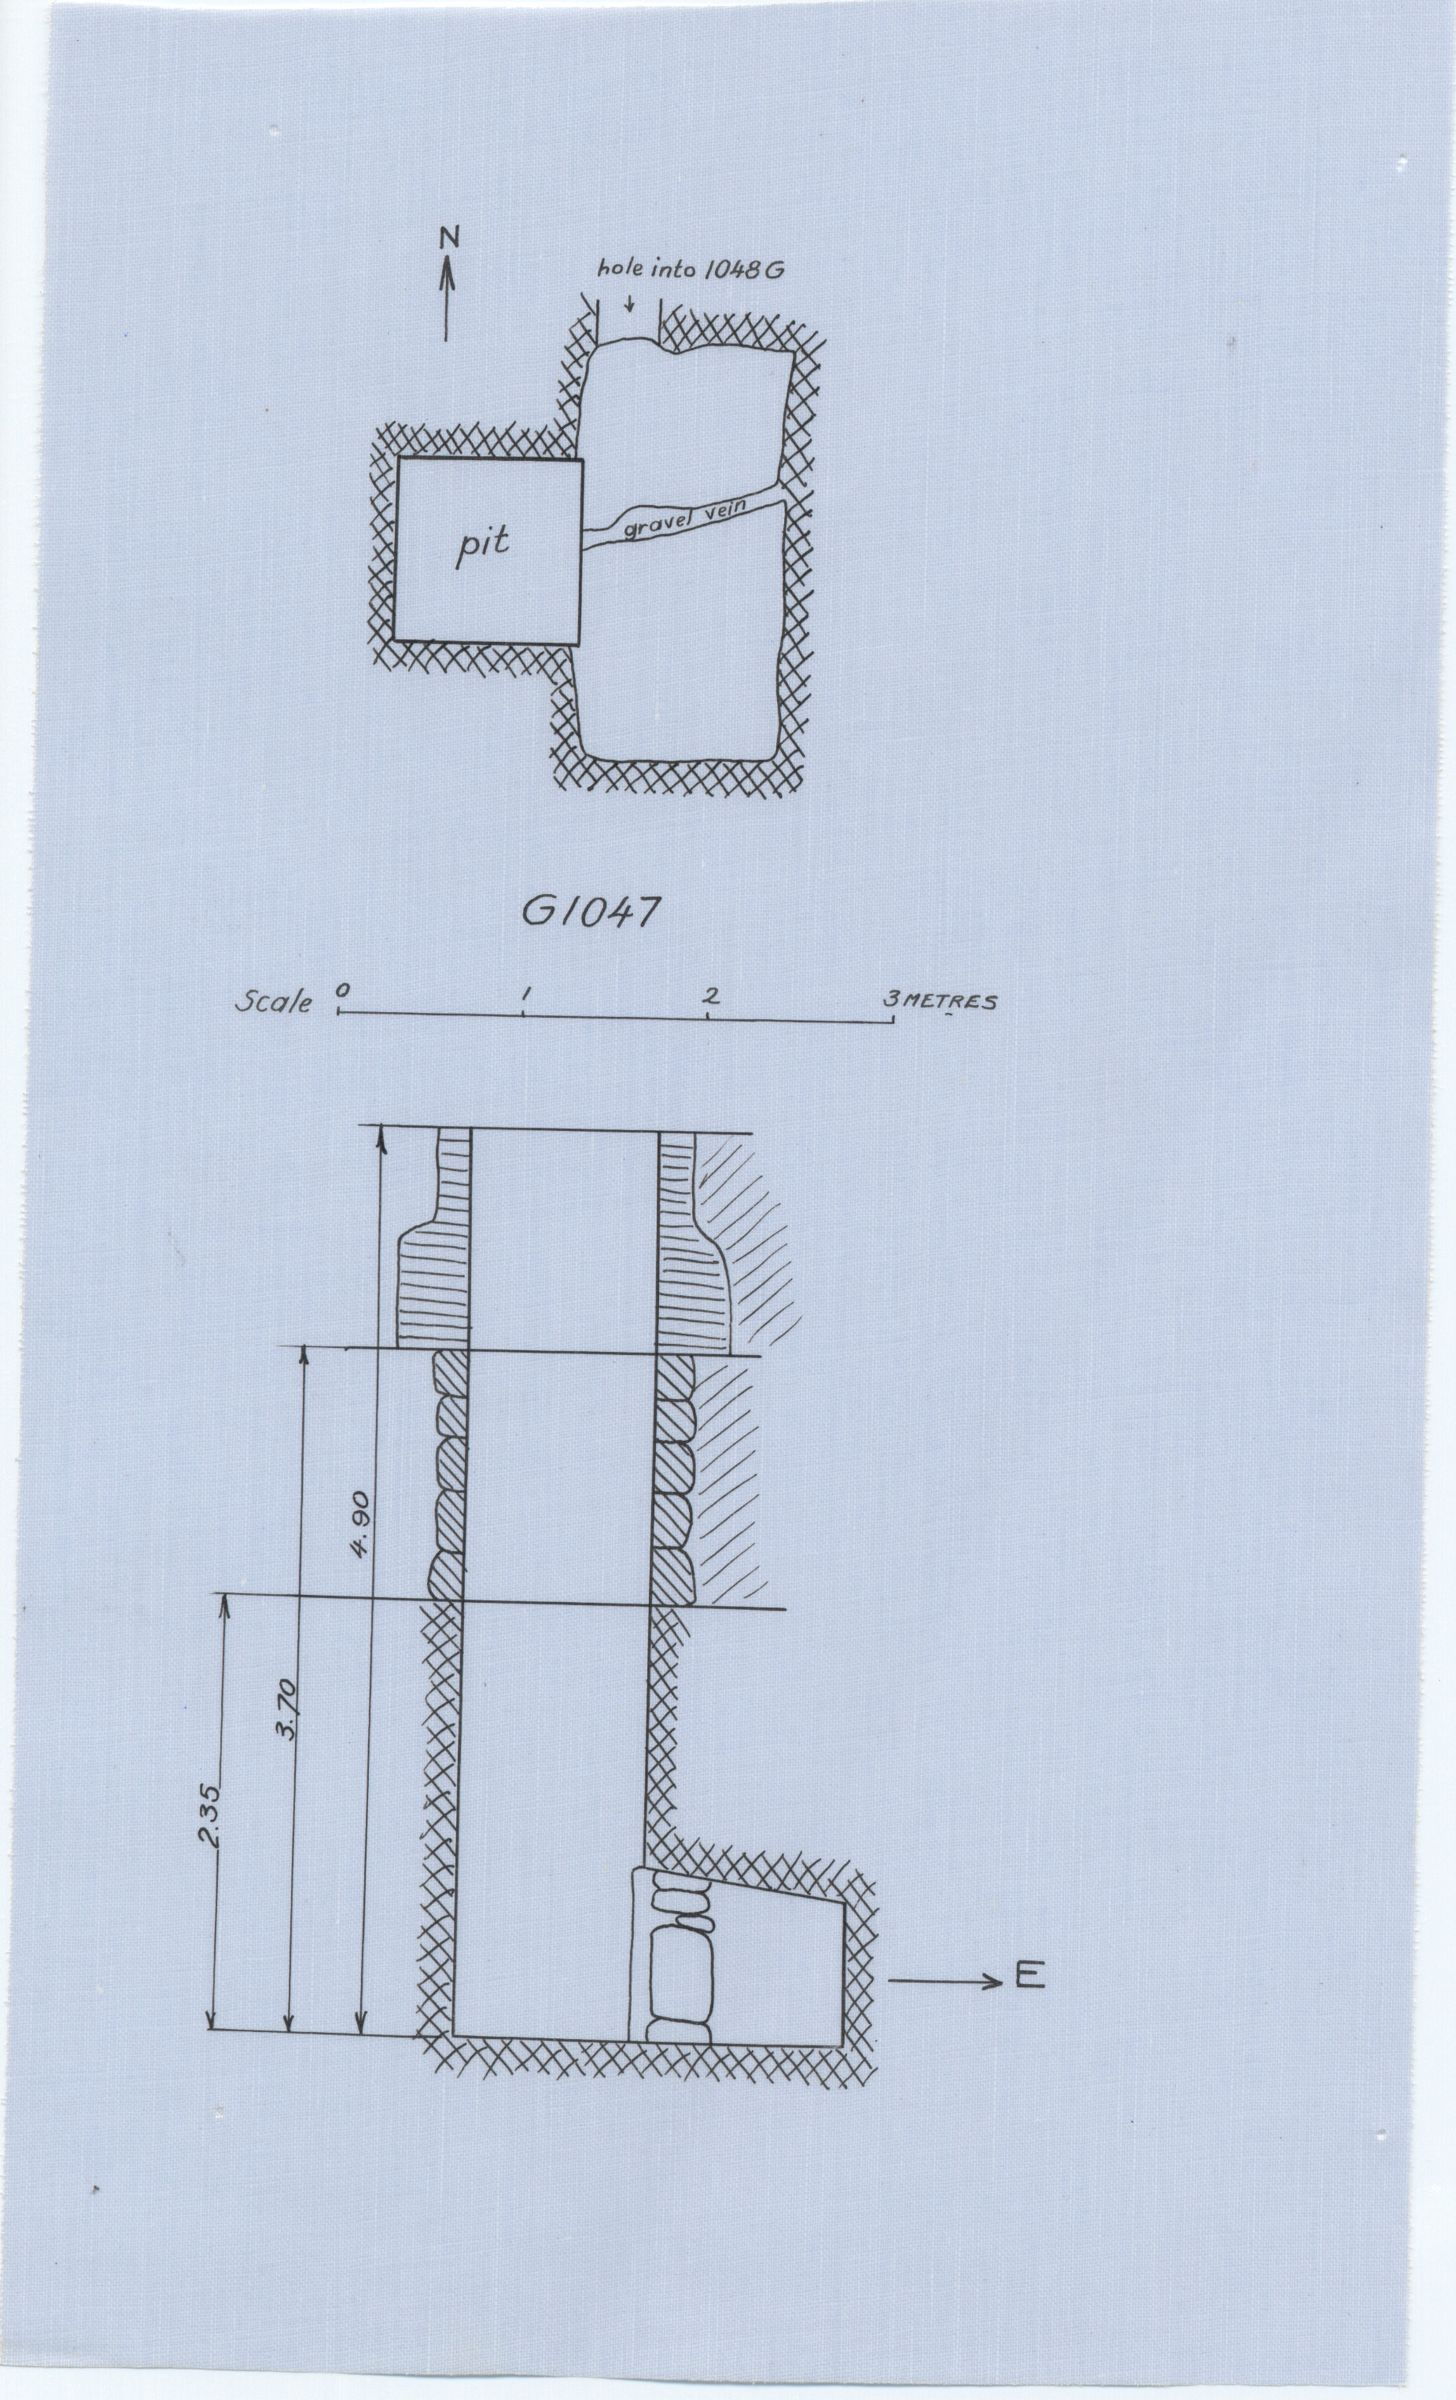 Maps and plans: G 1047, Shaft D (with hole into G 1048 C)